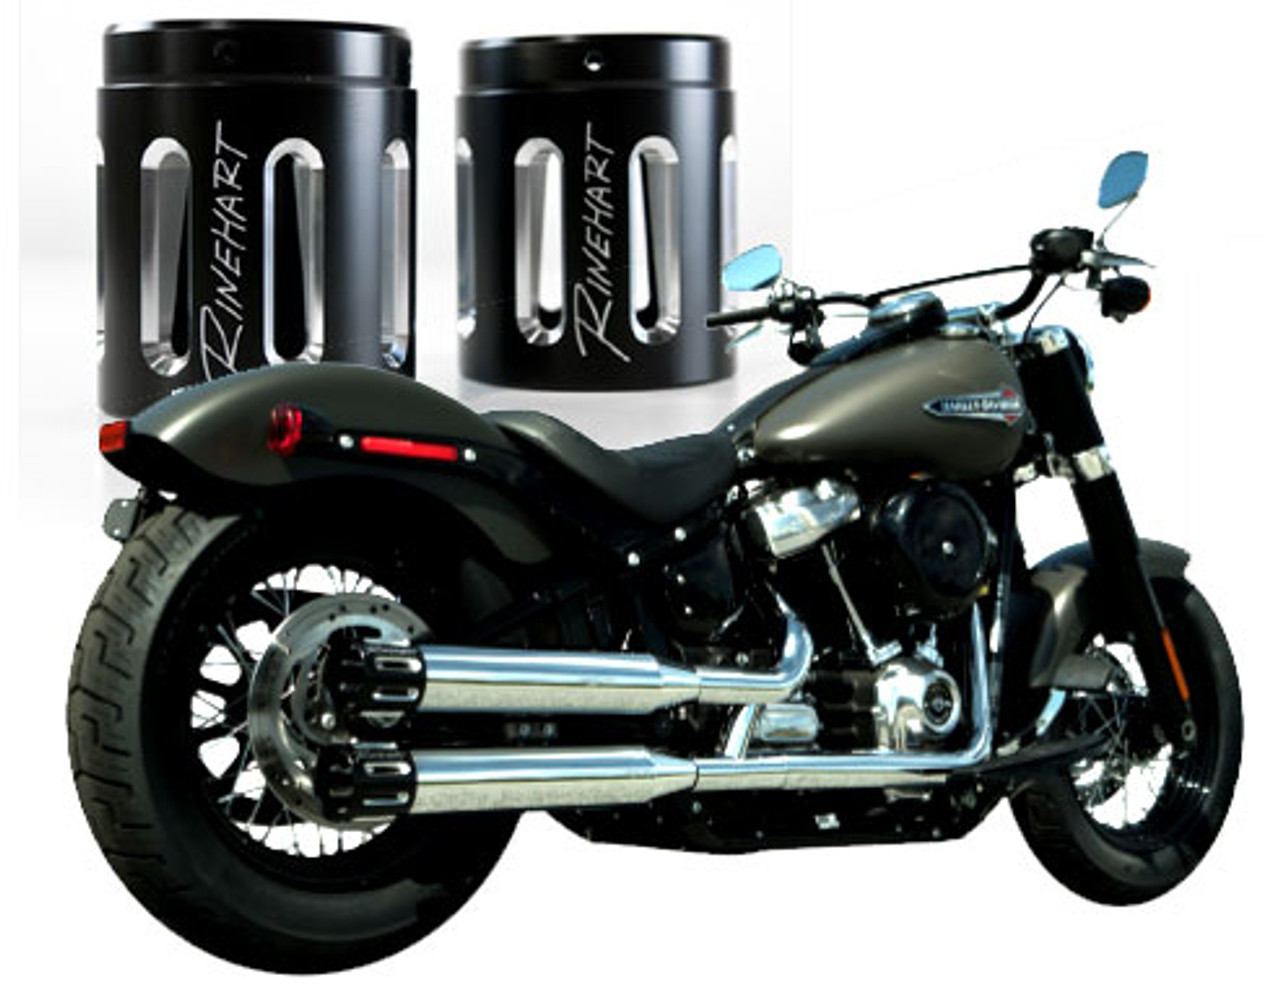 rinehart racing 3 5 inch slip on mufflers for softail models 18 up with slot end caps chrome with black slotted endcaps click for fitment